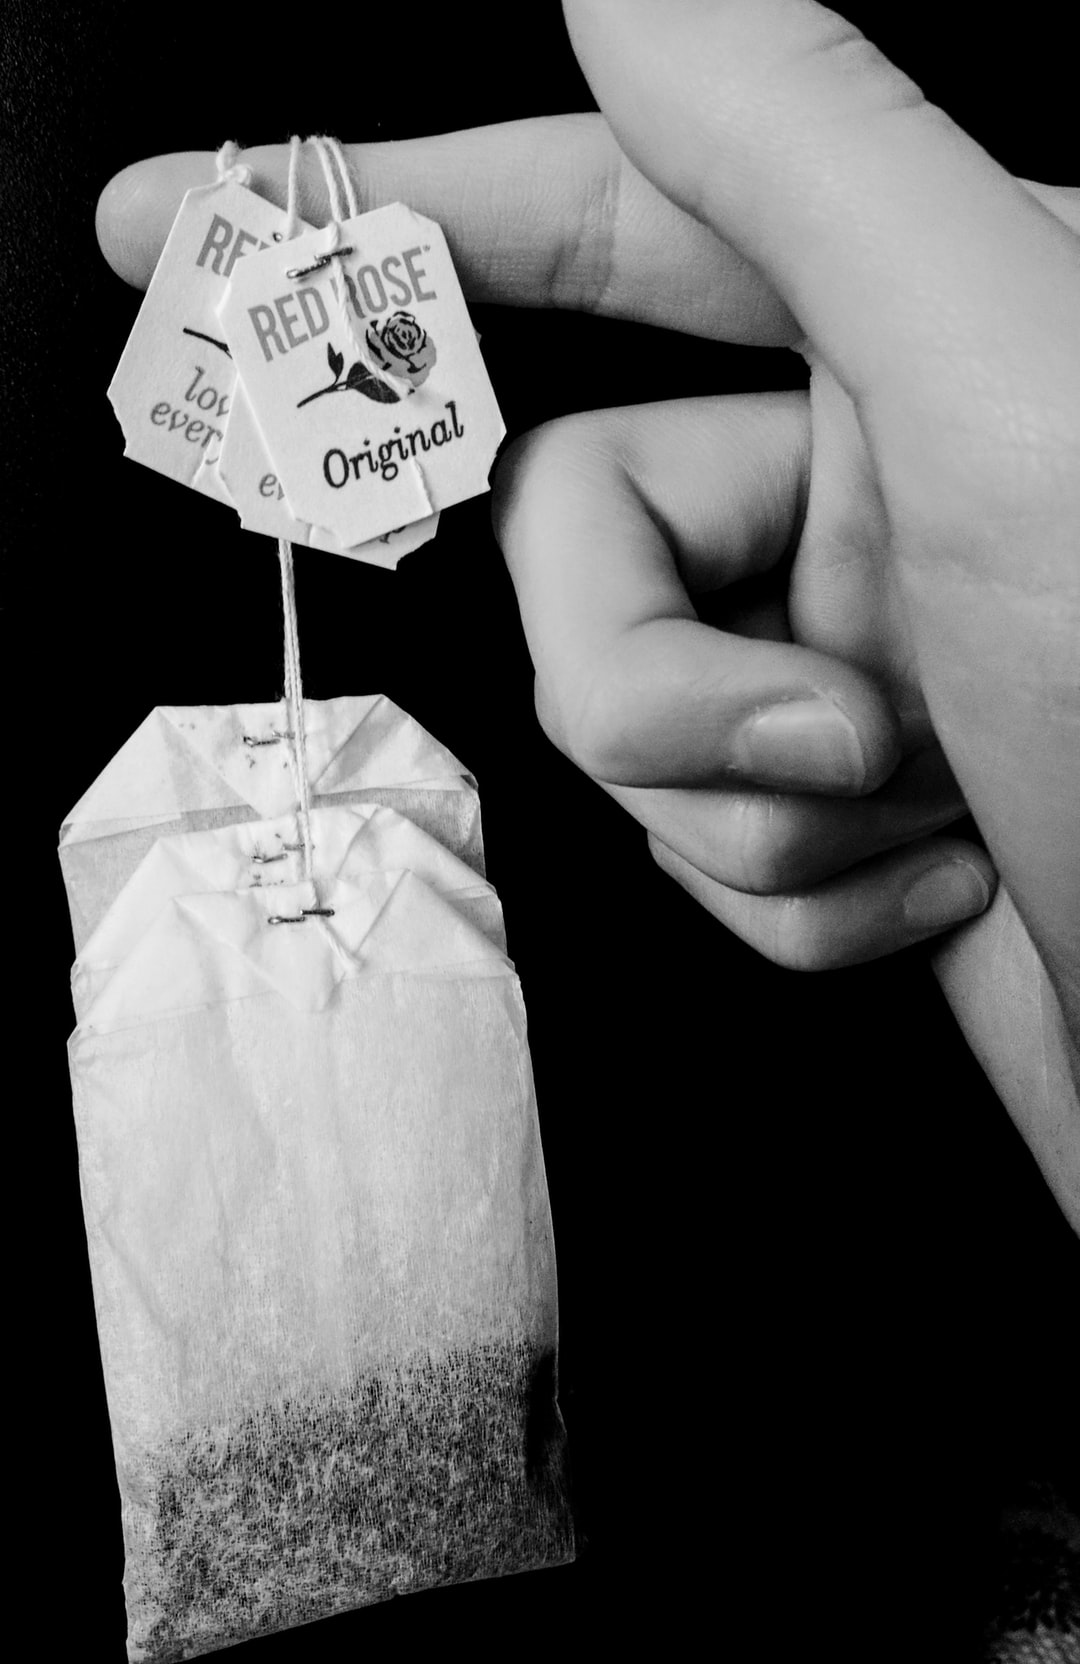 Black and White focus of person holding red rose tea bags